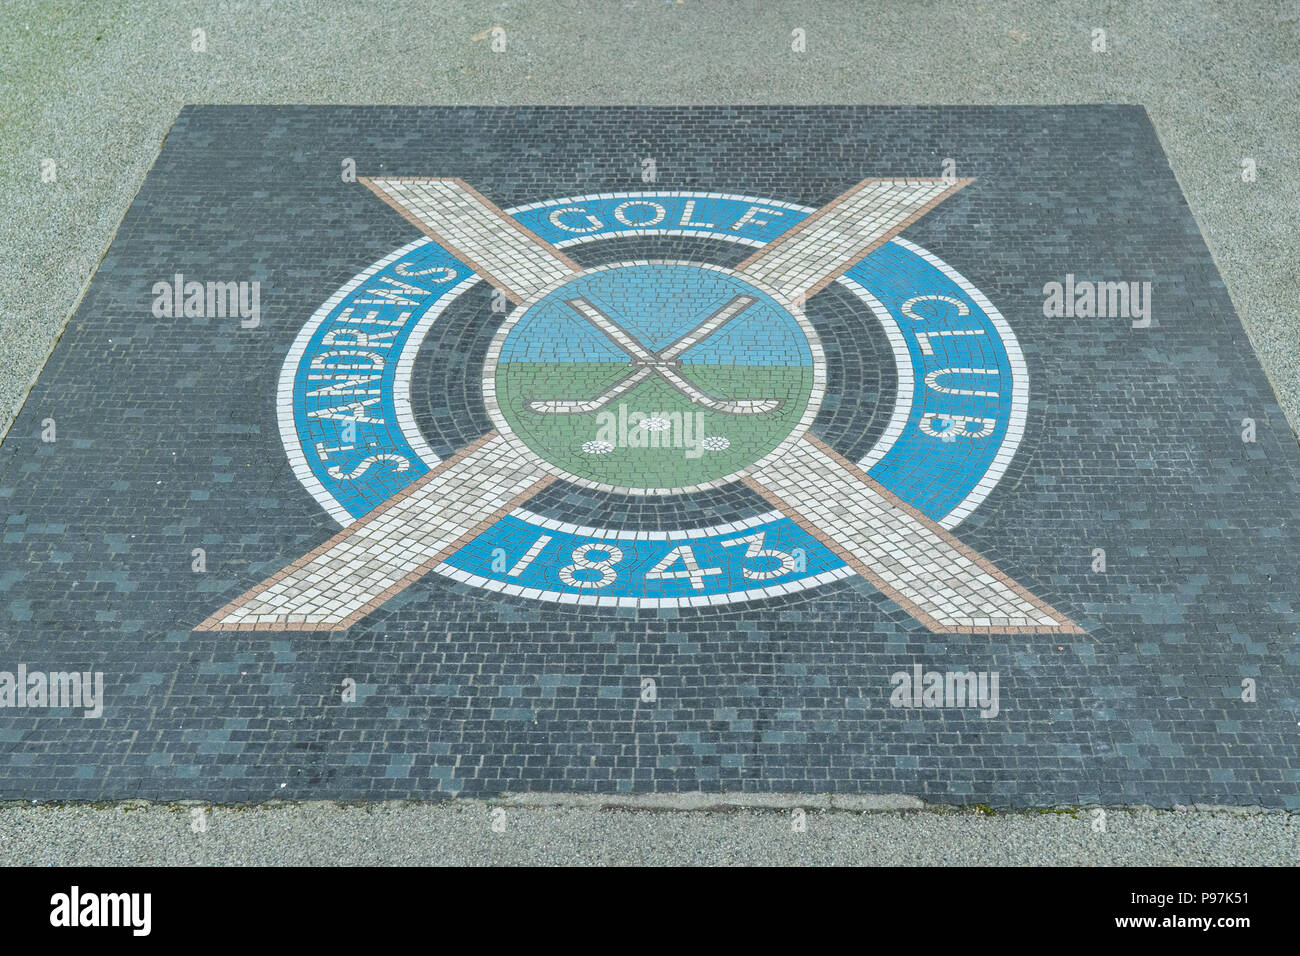 St Andrews Golf Club, Links House, St Andrews, Fife, Scotland, UK - mosaic on footpath leading to door of the private members club - Stock Image